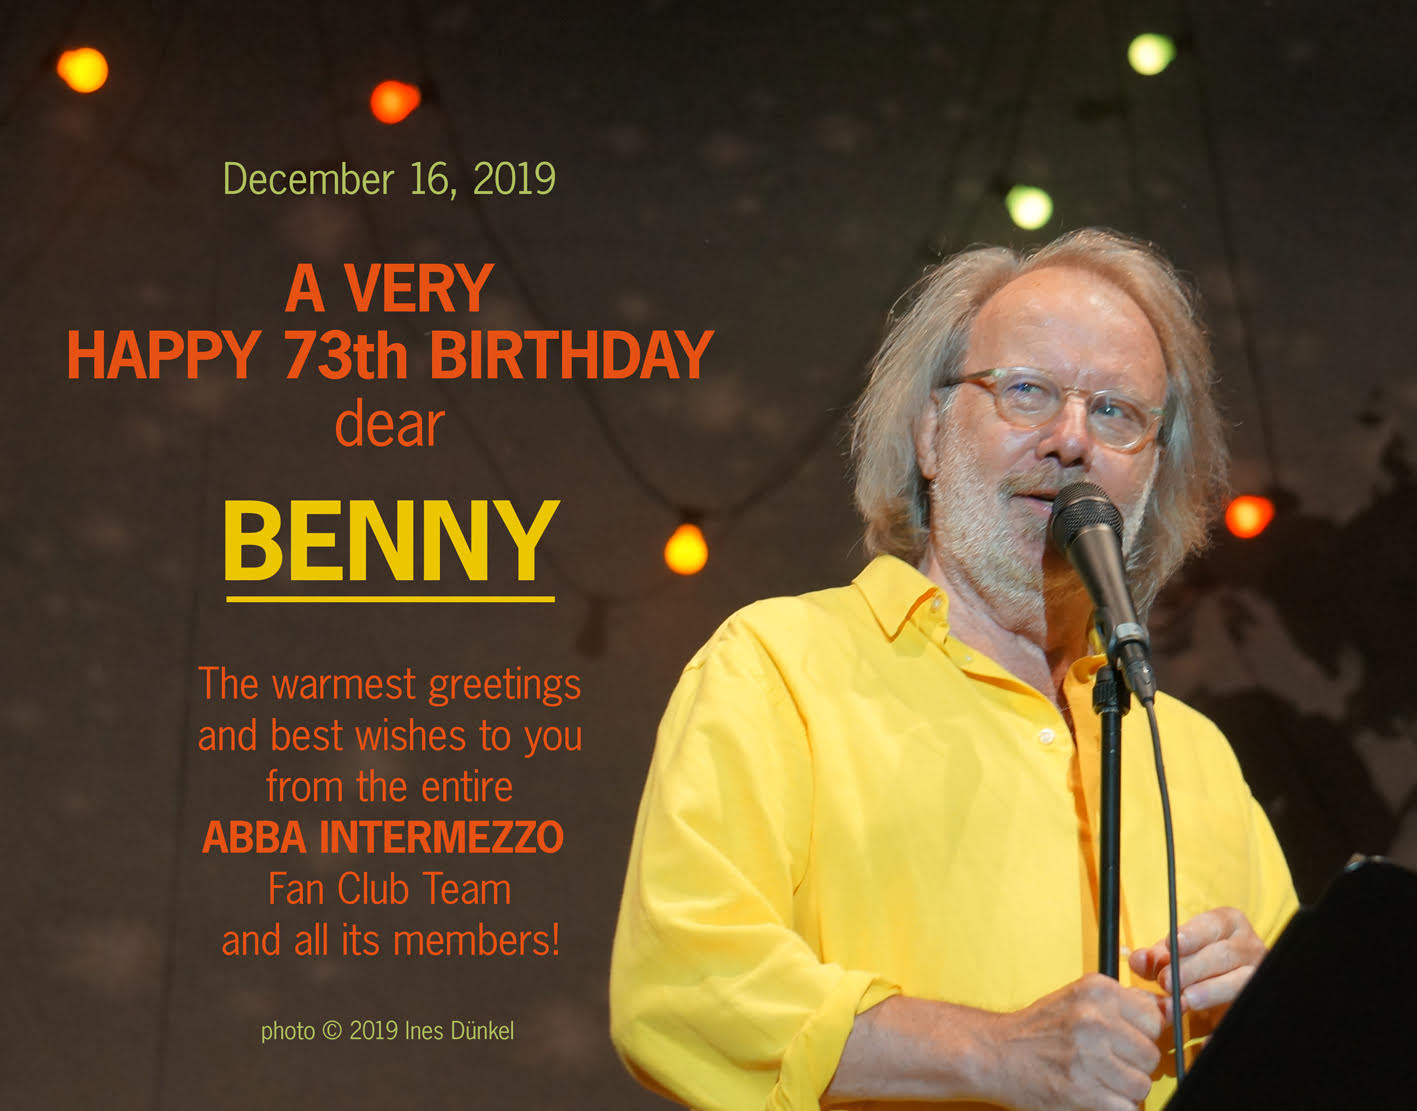 Benny's birthday